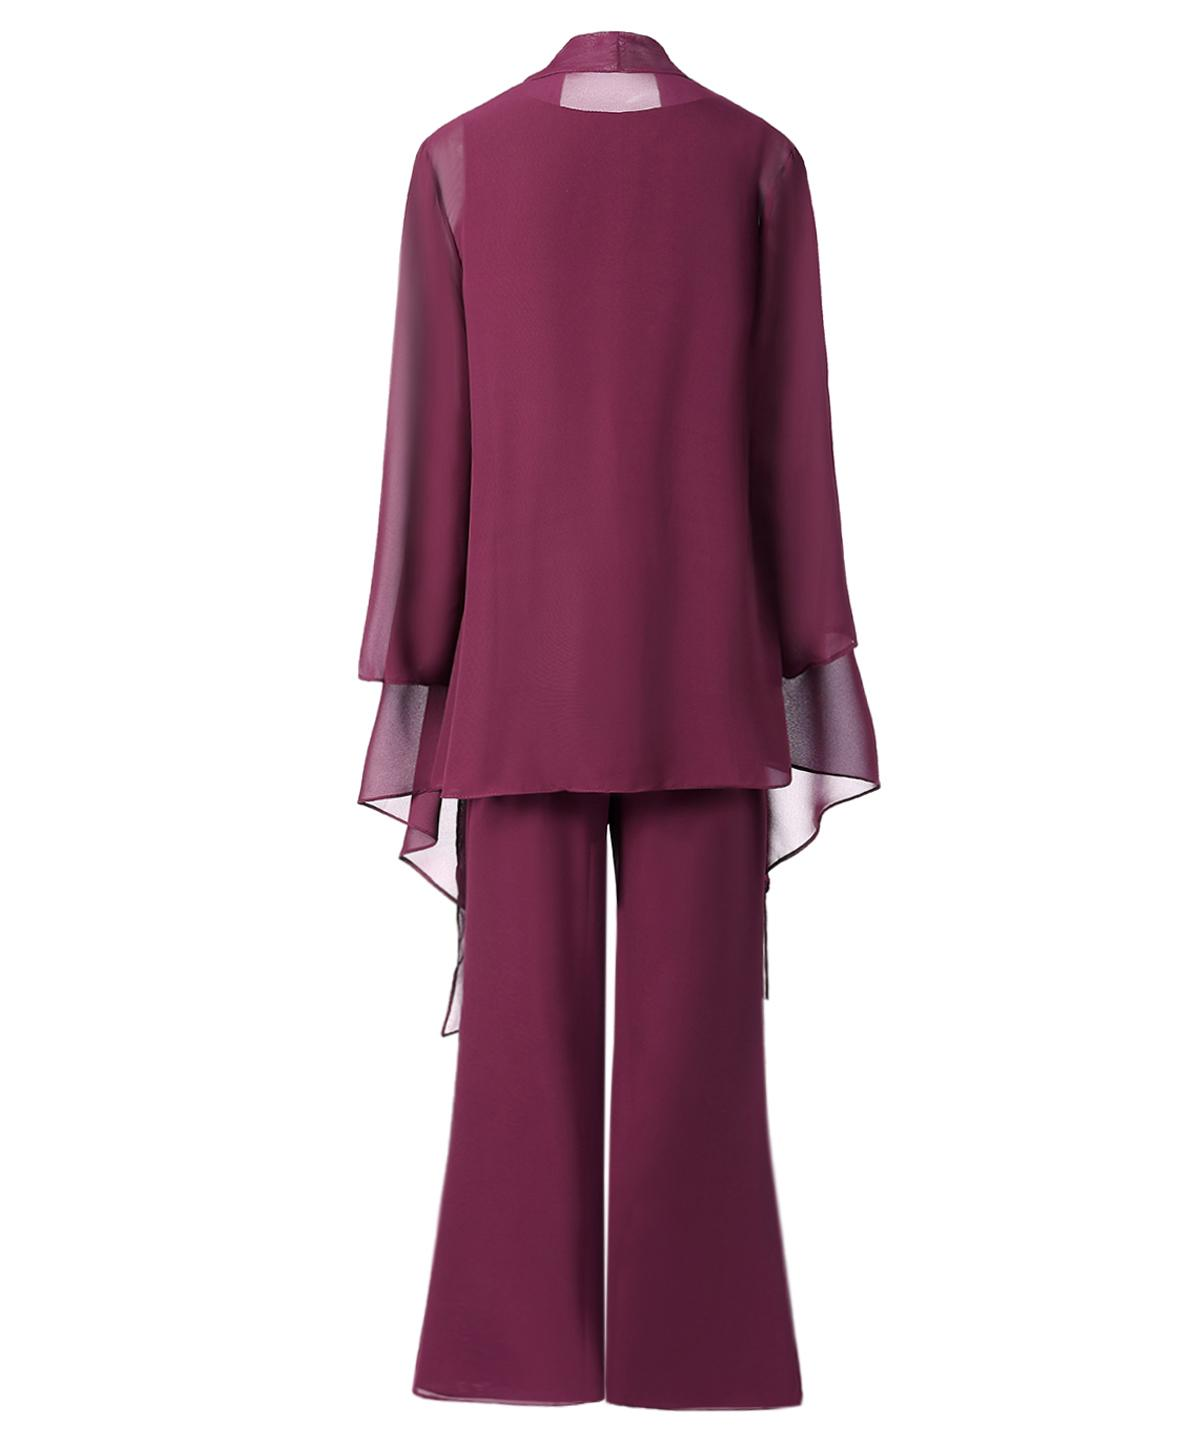 SOLOVEDRESS Women 3 Pieces Chiffon Mother of the Bride Dress Pant Suits with Sleeves Outfit Jacket Wide Pantsuit SL-M13